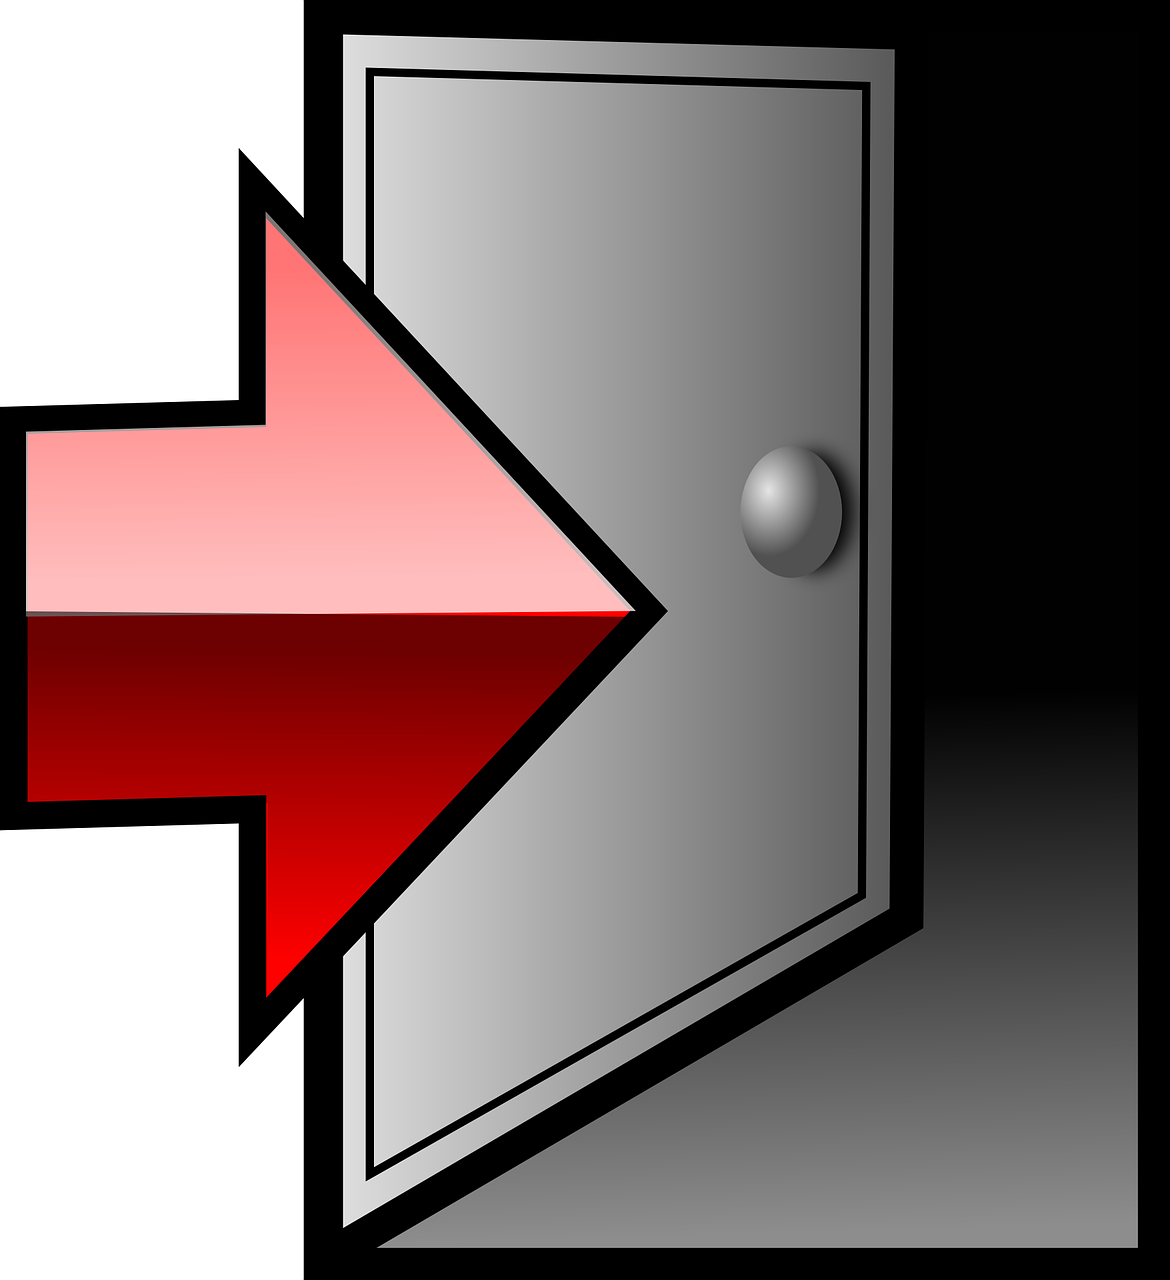 button exit log free vector graphic on pixabay https creativecommons org licenses publicdomain